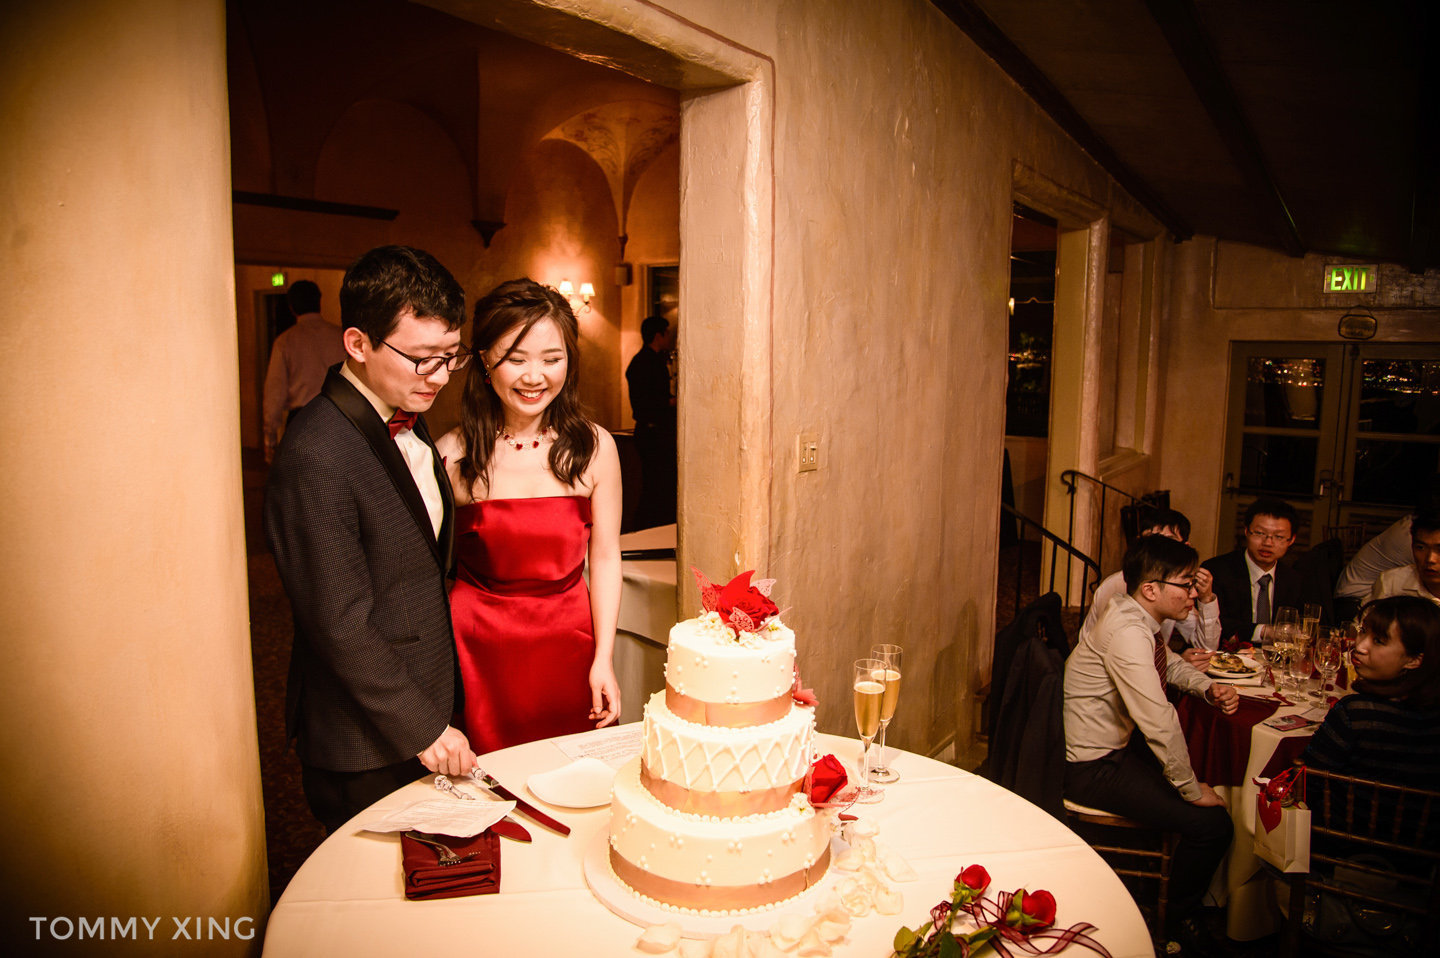 Los Angeles Wedding Photographer 洛杉矶婚礼婚纱摄影师 Tommy Xing-254.JPG